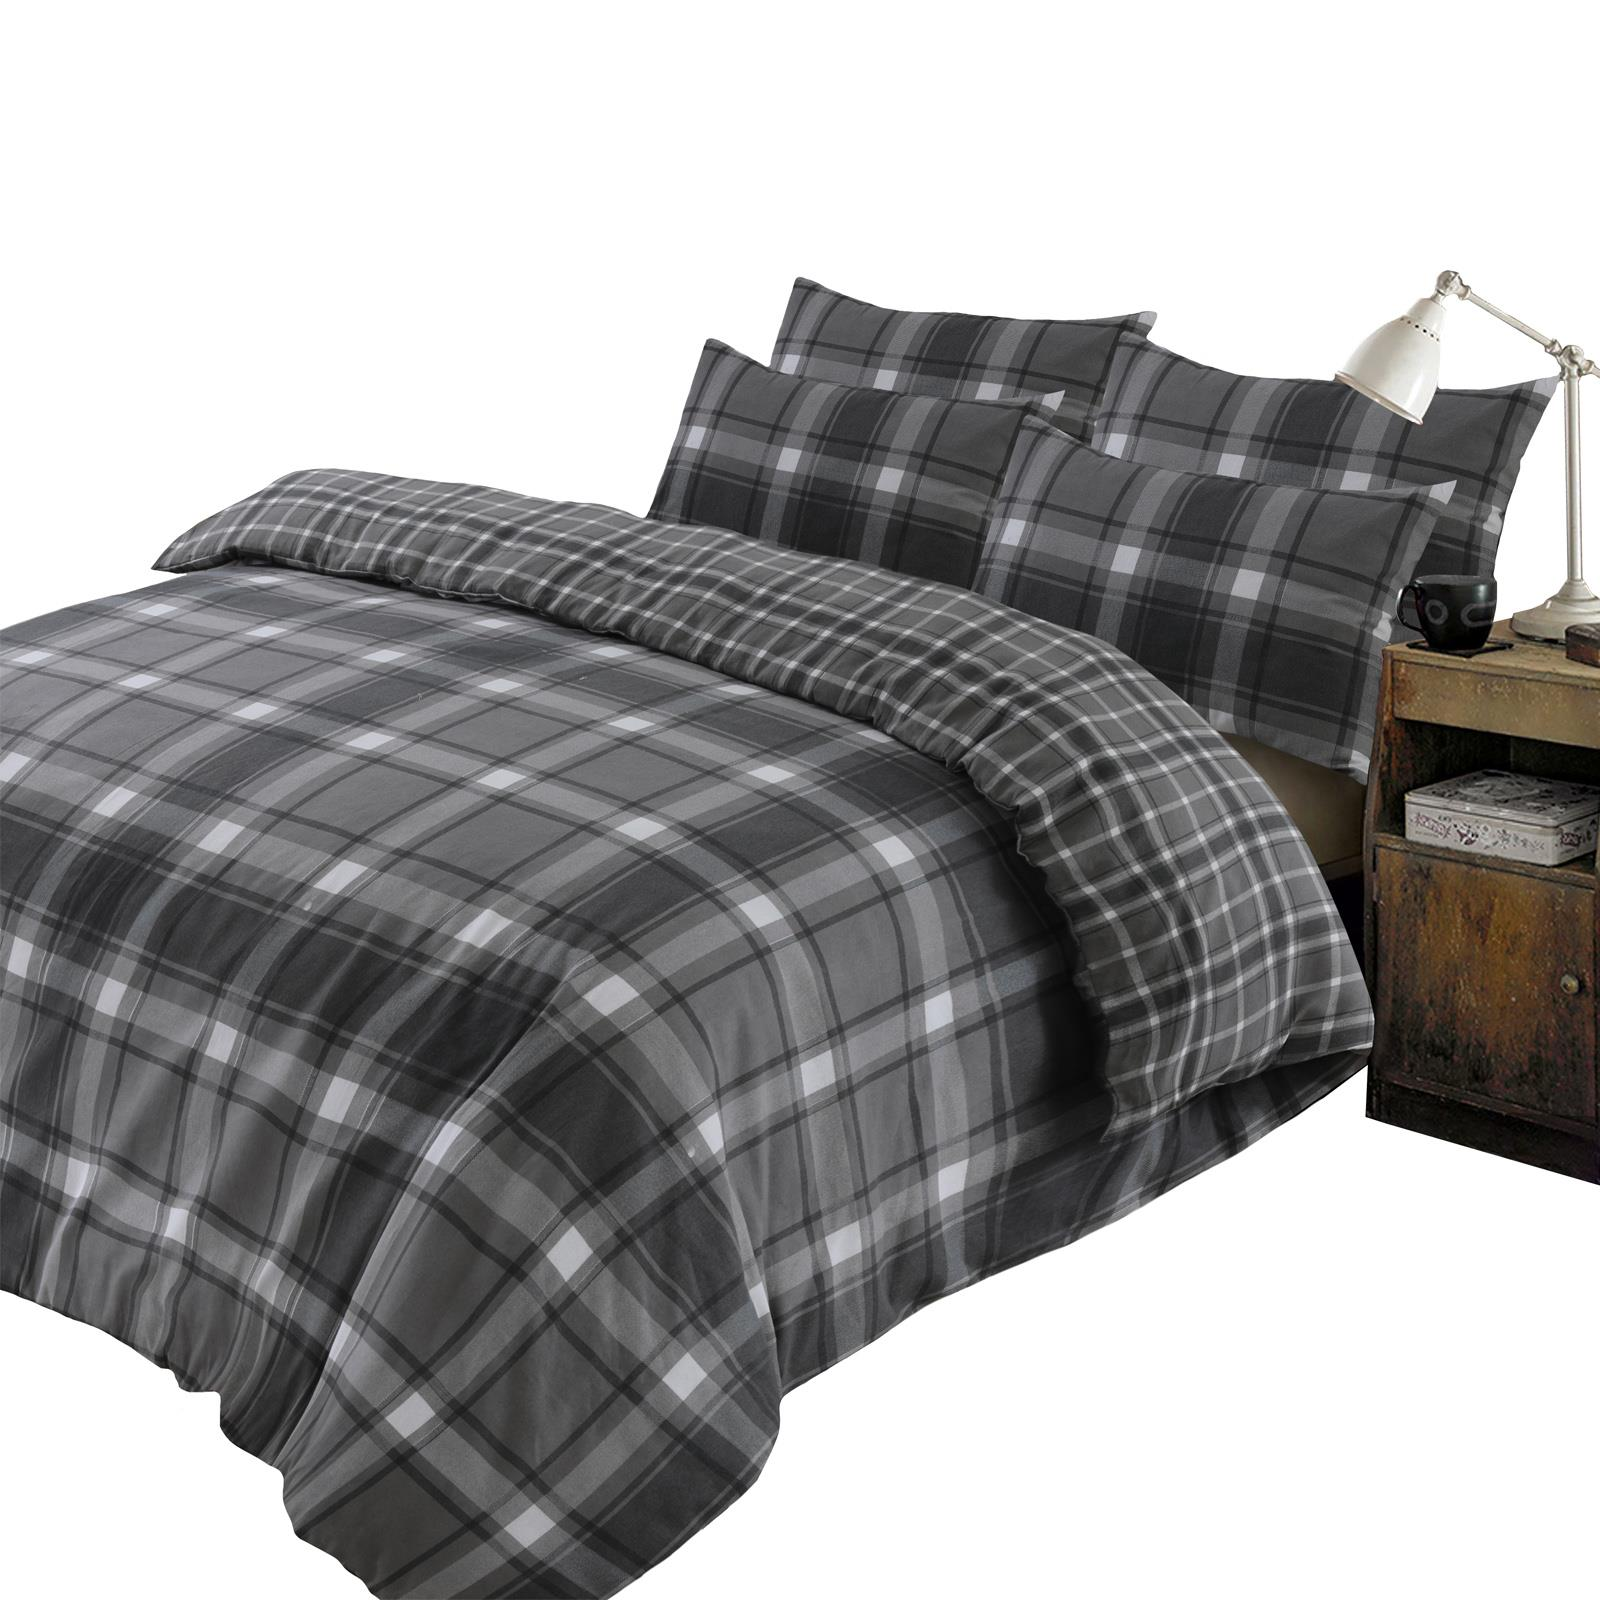 Brushed-Cotton-Tartan-Duvet-Cover-with-Pillowcase-Set-Aspen-Check-Flannelette thumbnail 3